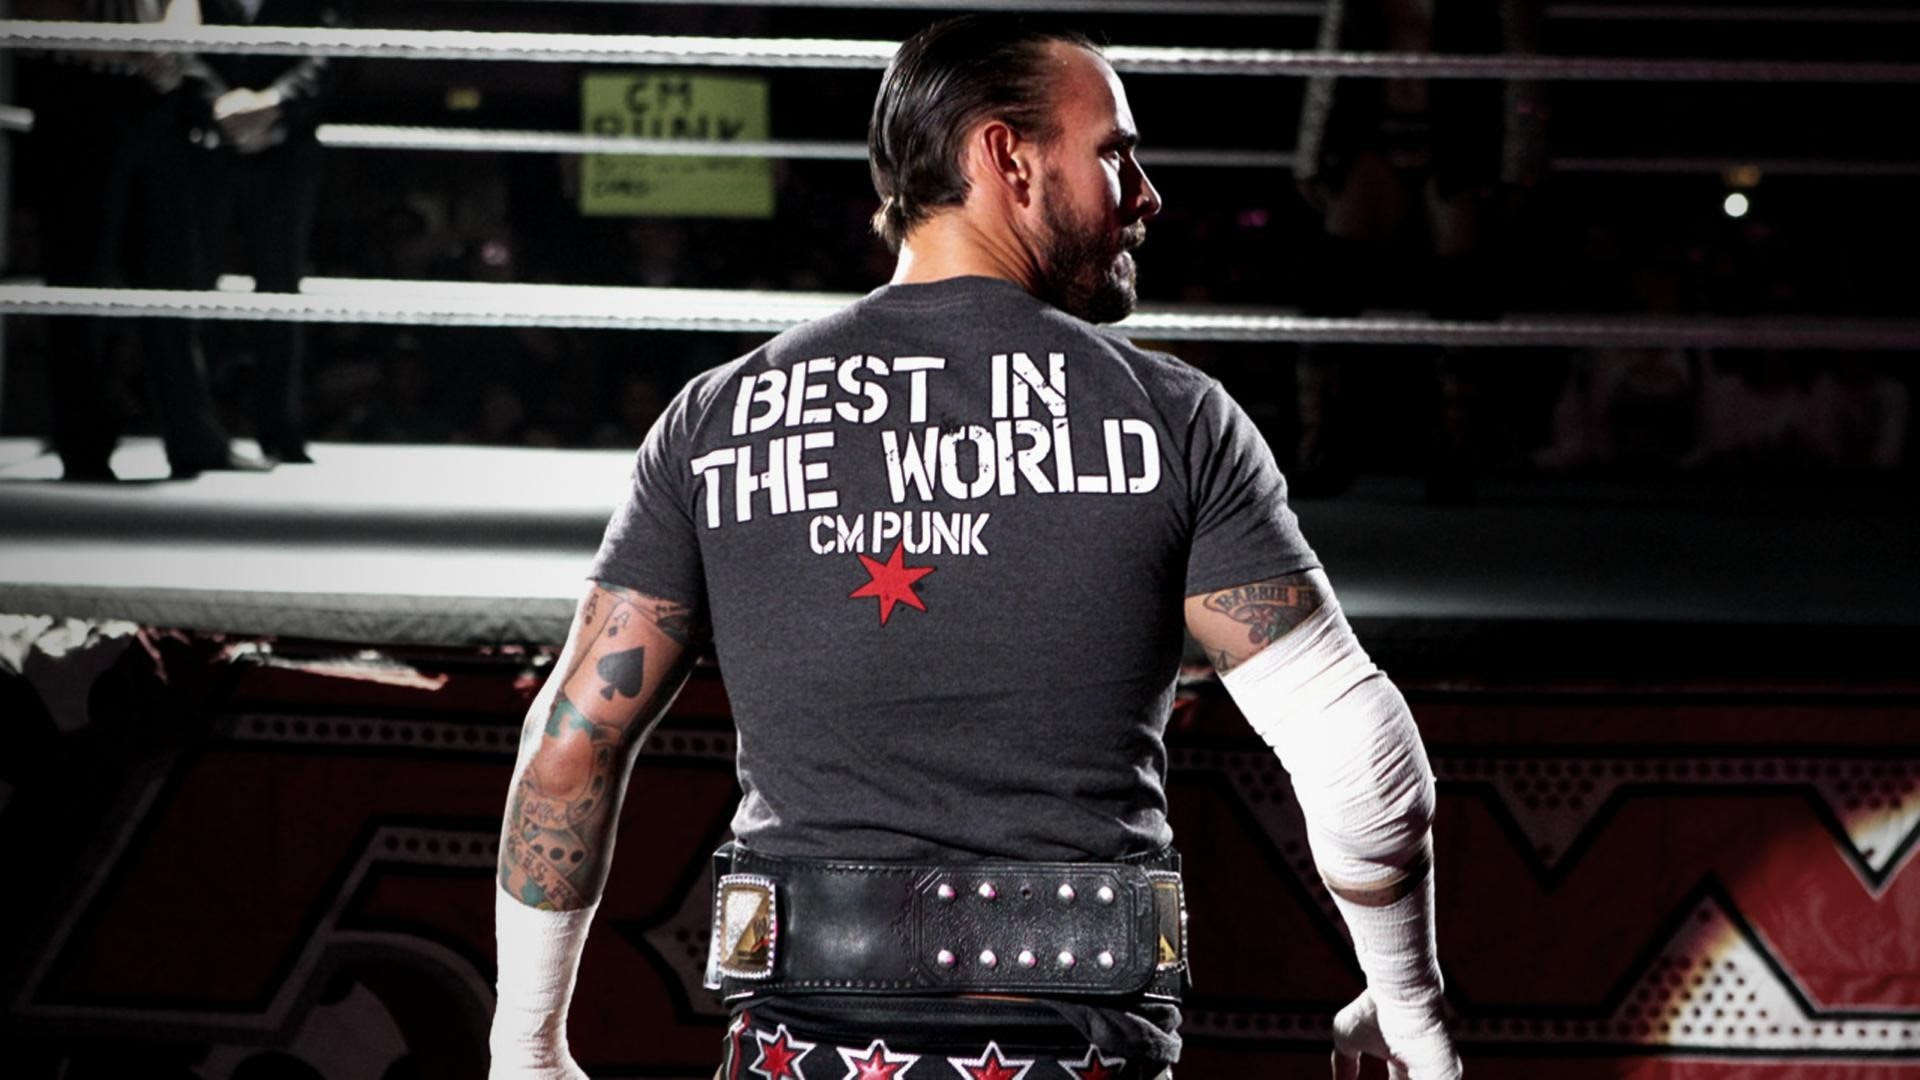 Cm Punk 2018 Best in the World Wallpaper (70+ images)